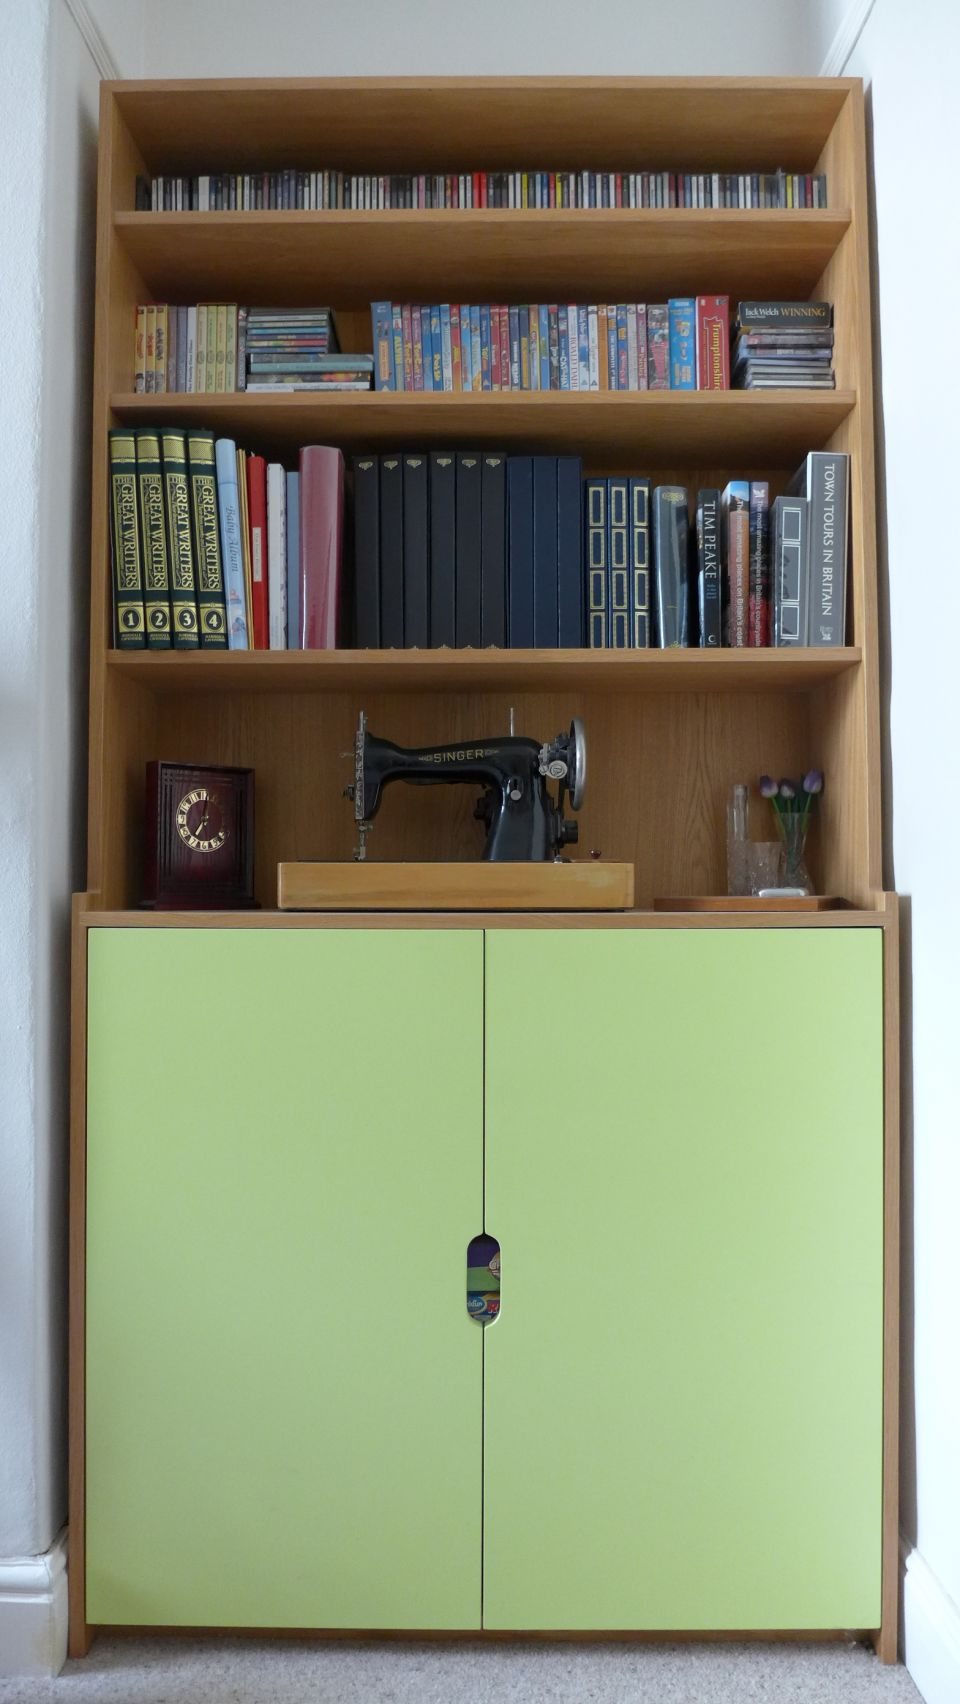 bespoke dresser in oak veneer and lime green eggshell